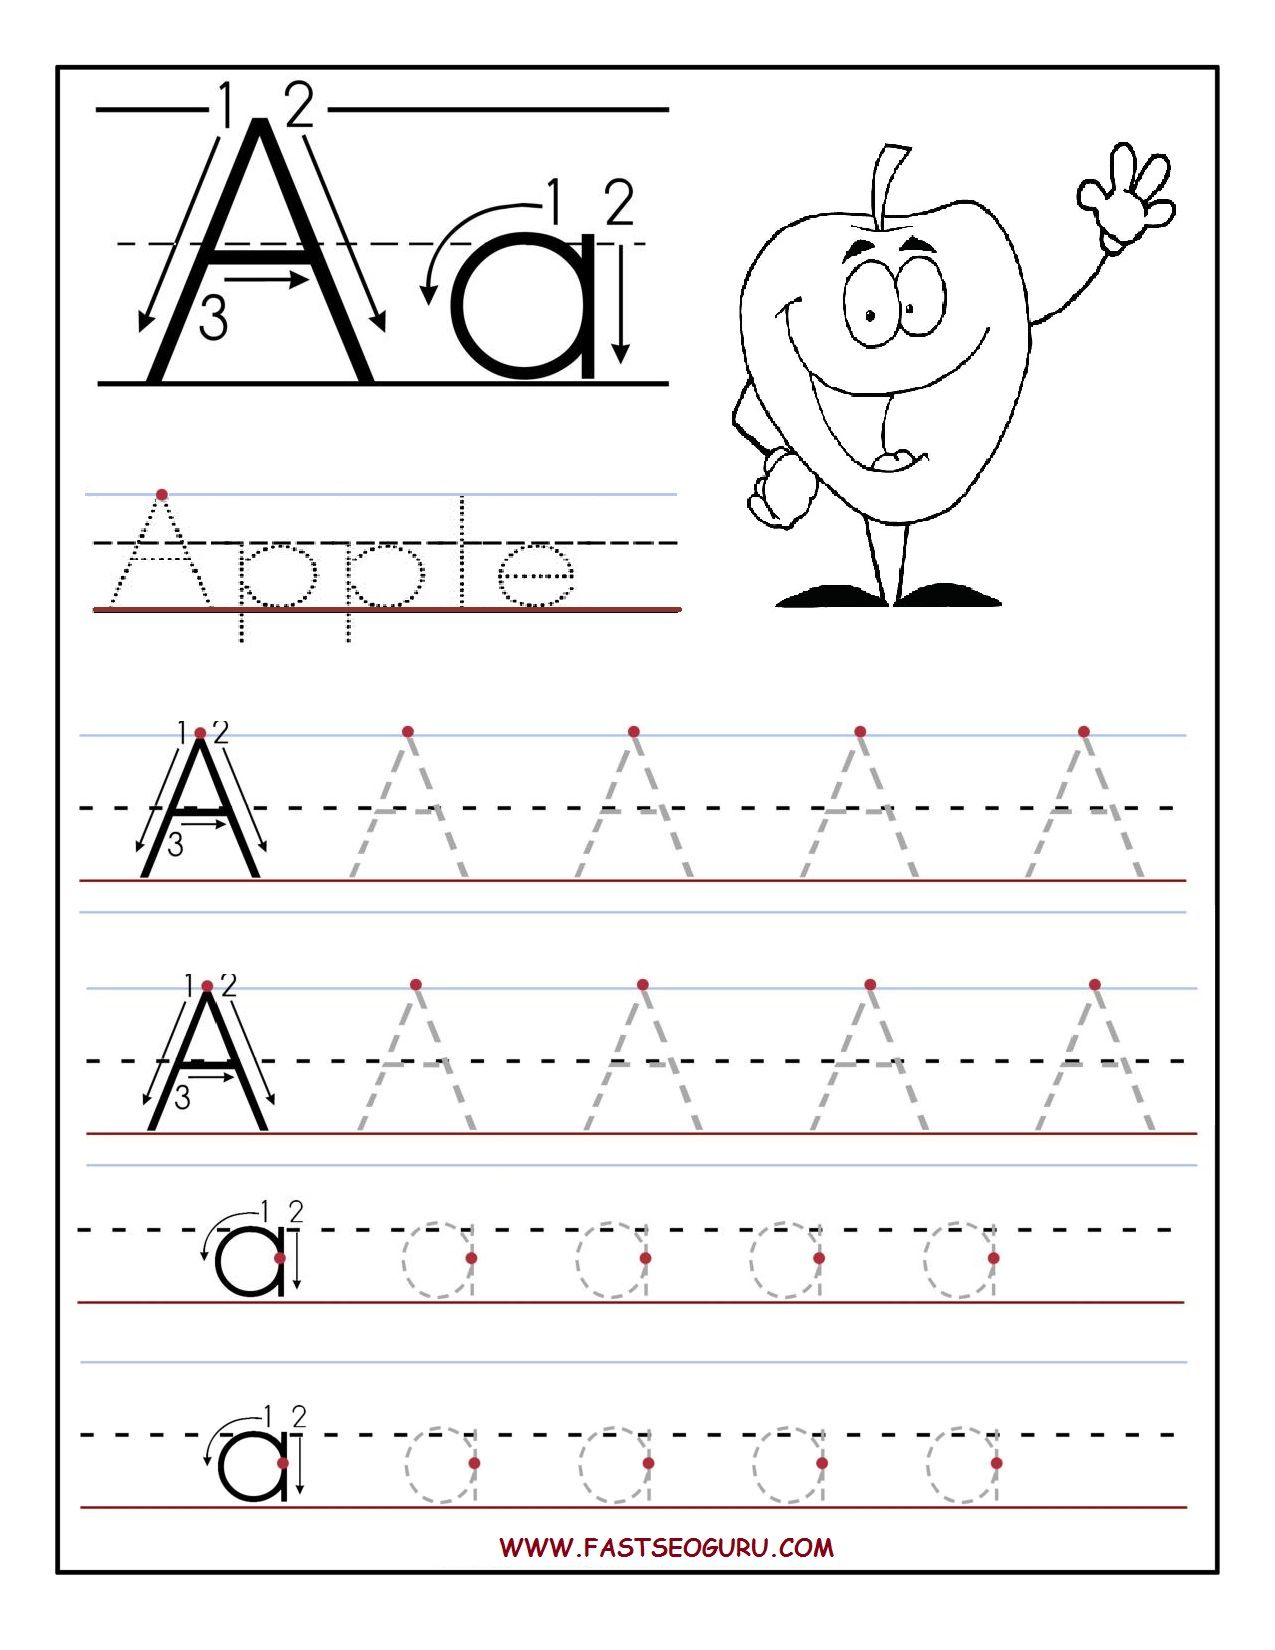 bFreeb bPrintableb letter A tracing bworksheetsb – Letter a Worksheets for Preschool